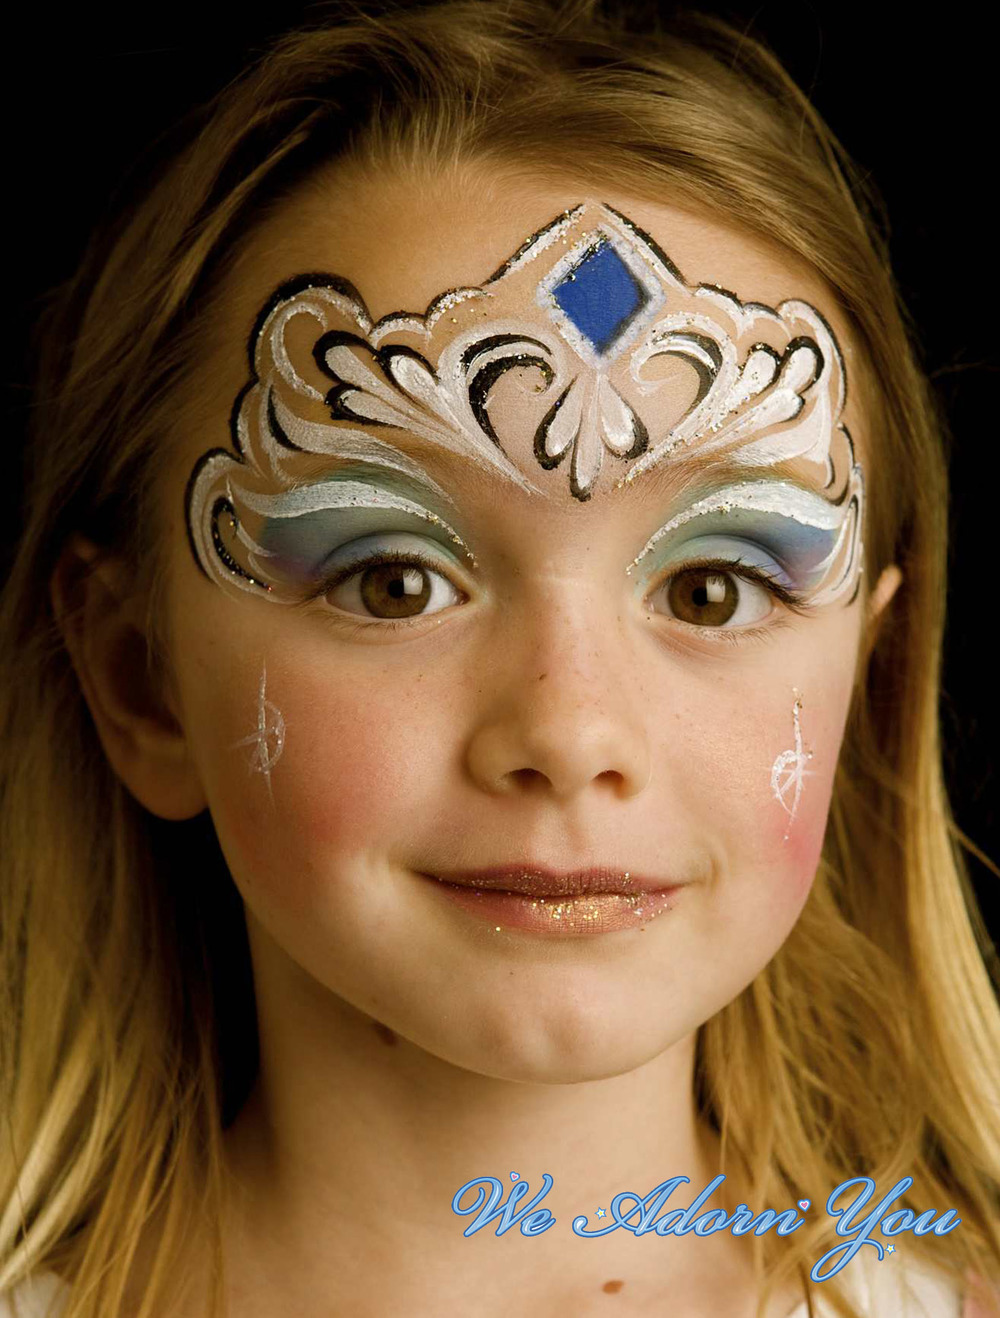 Face Painting Princess- We Adorn You 2.jpg